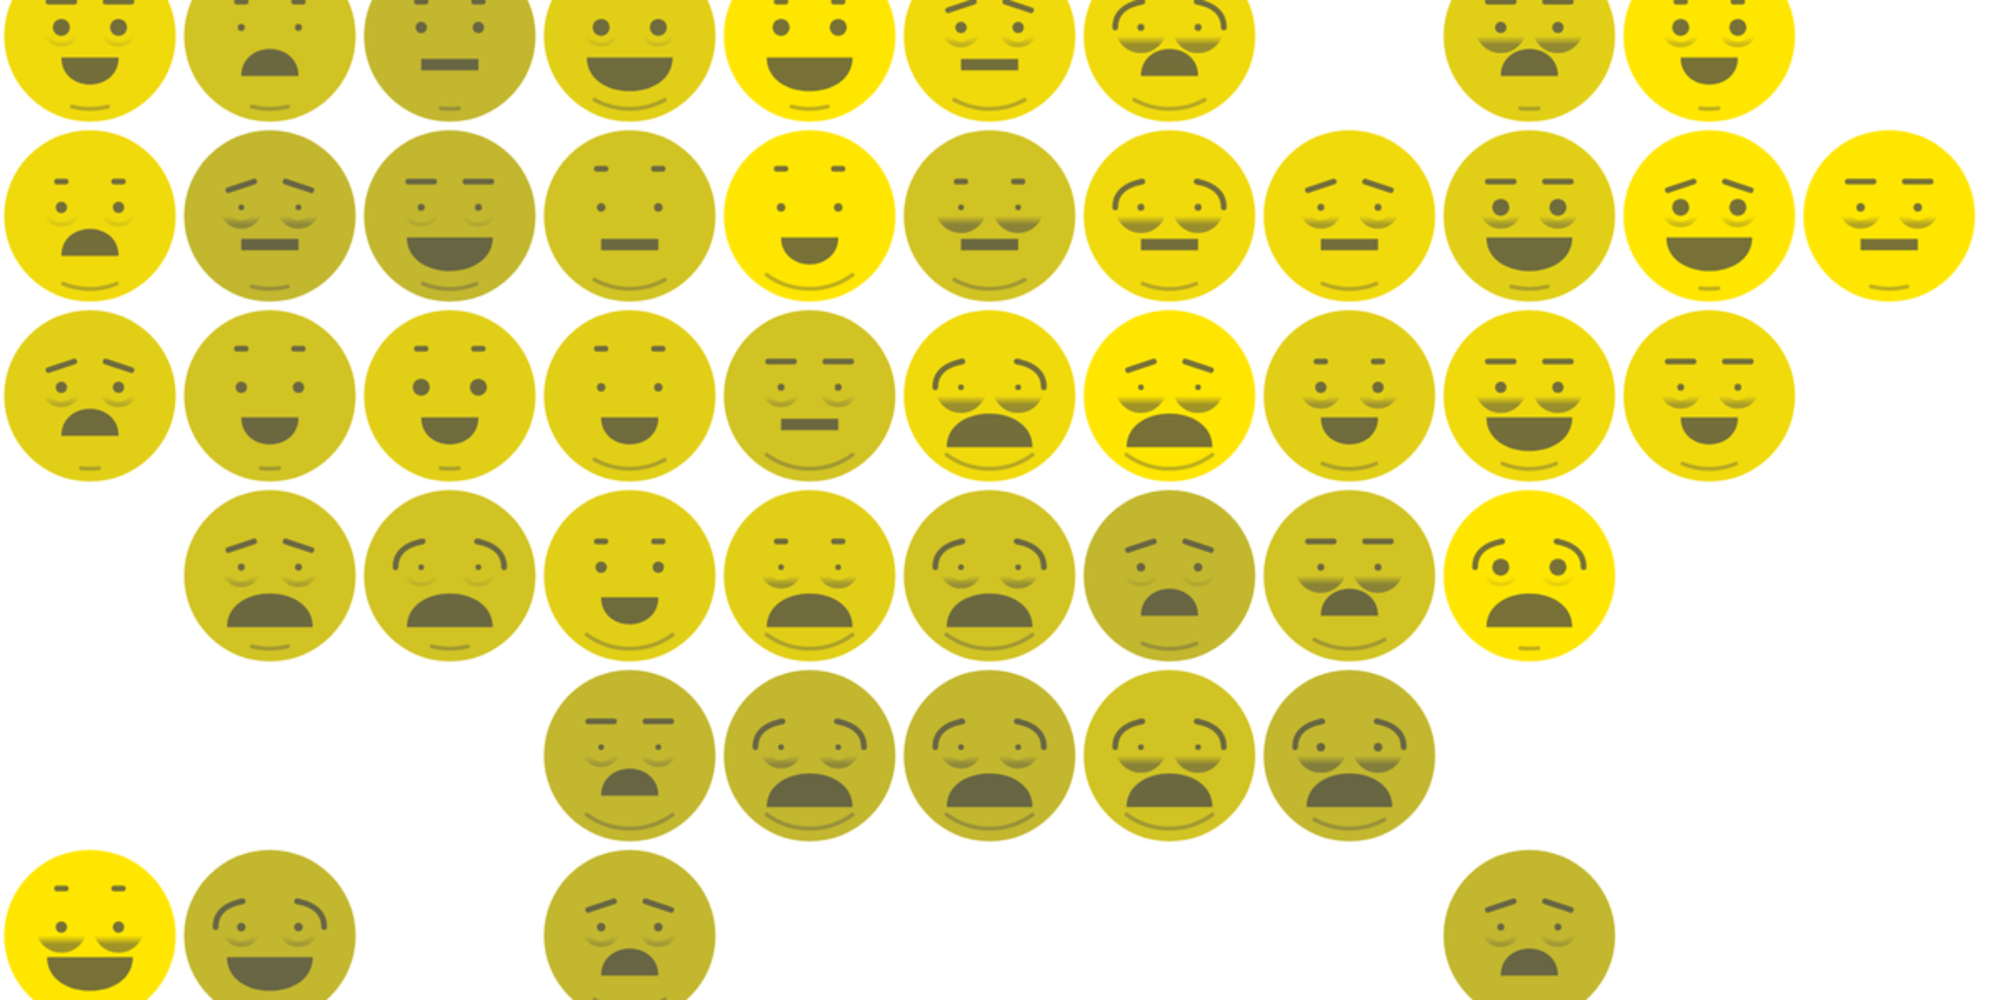 The Best And Worst States For Quality Of Life According To Emojis Data Visualization Emoji Map